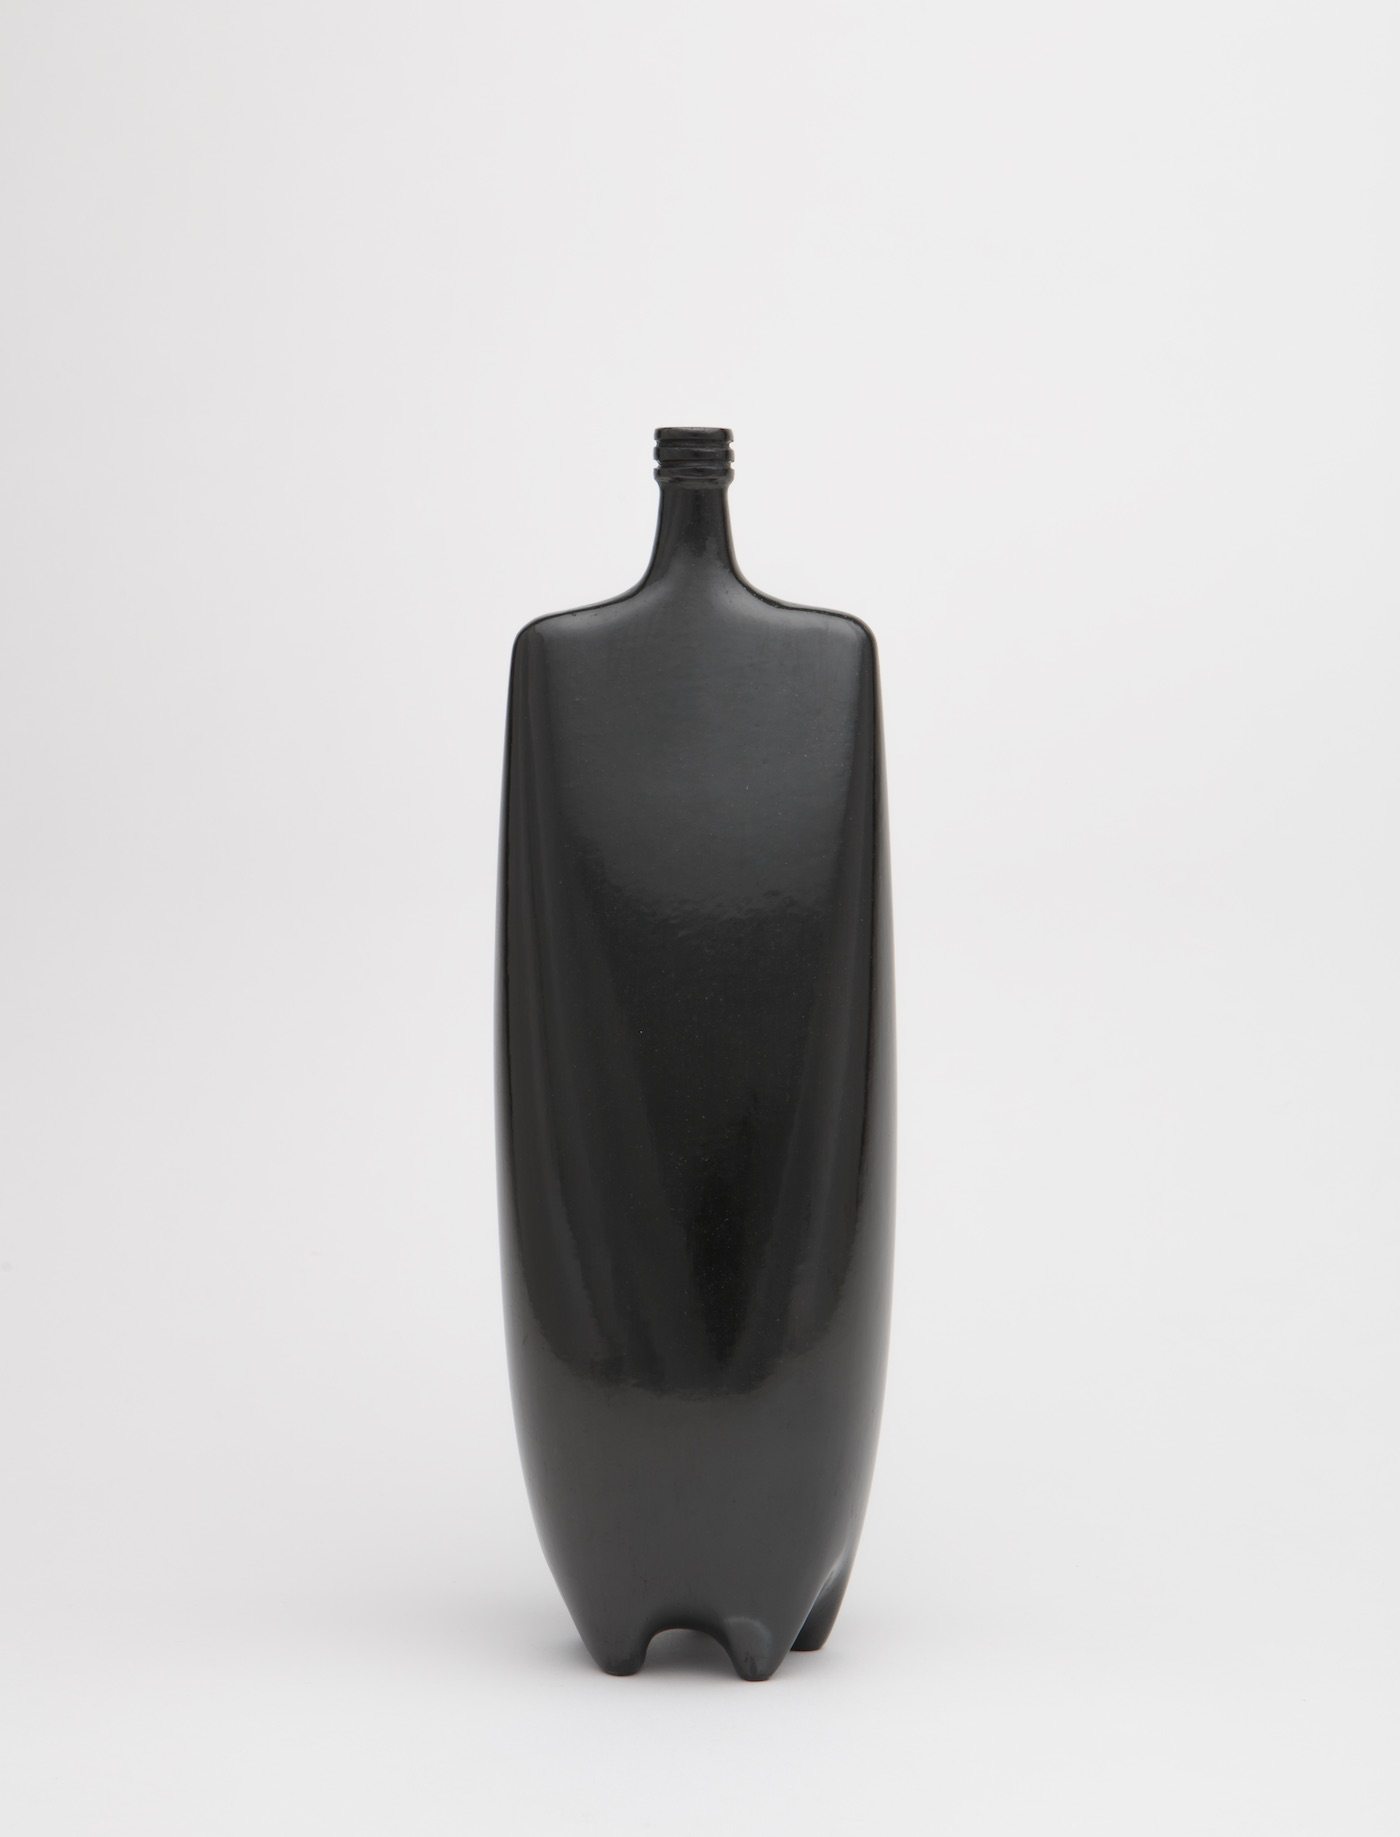 Shiny, black sculpture made of clay resembles a bottle with a square top and rounded body.